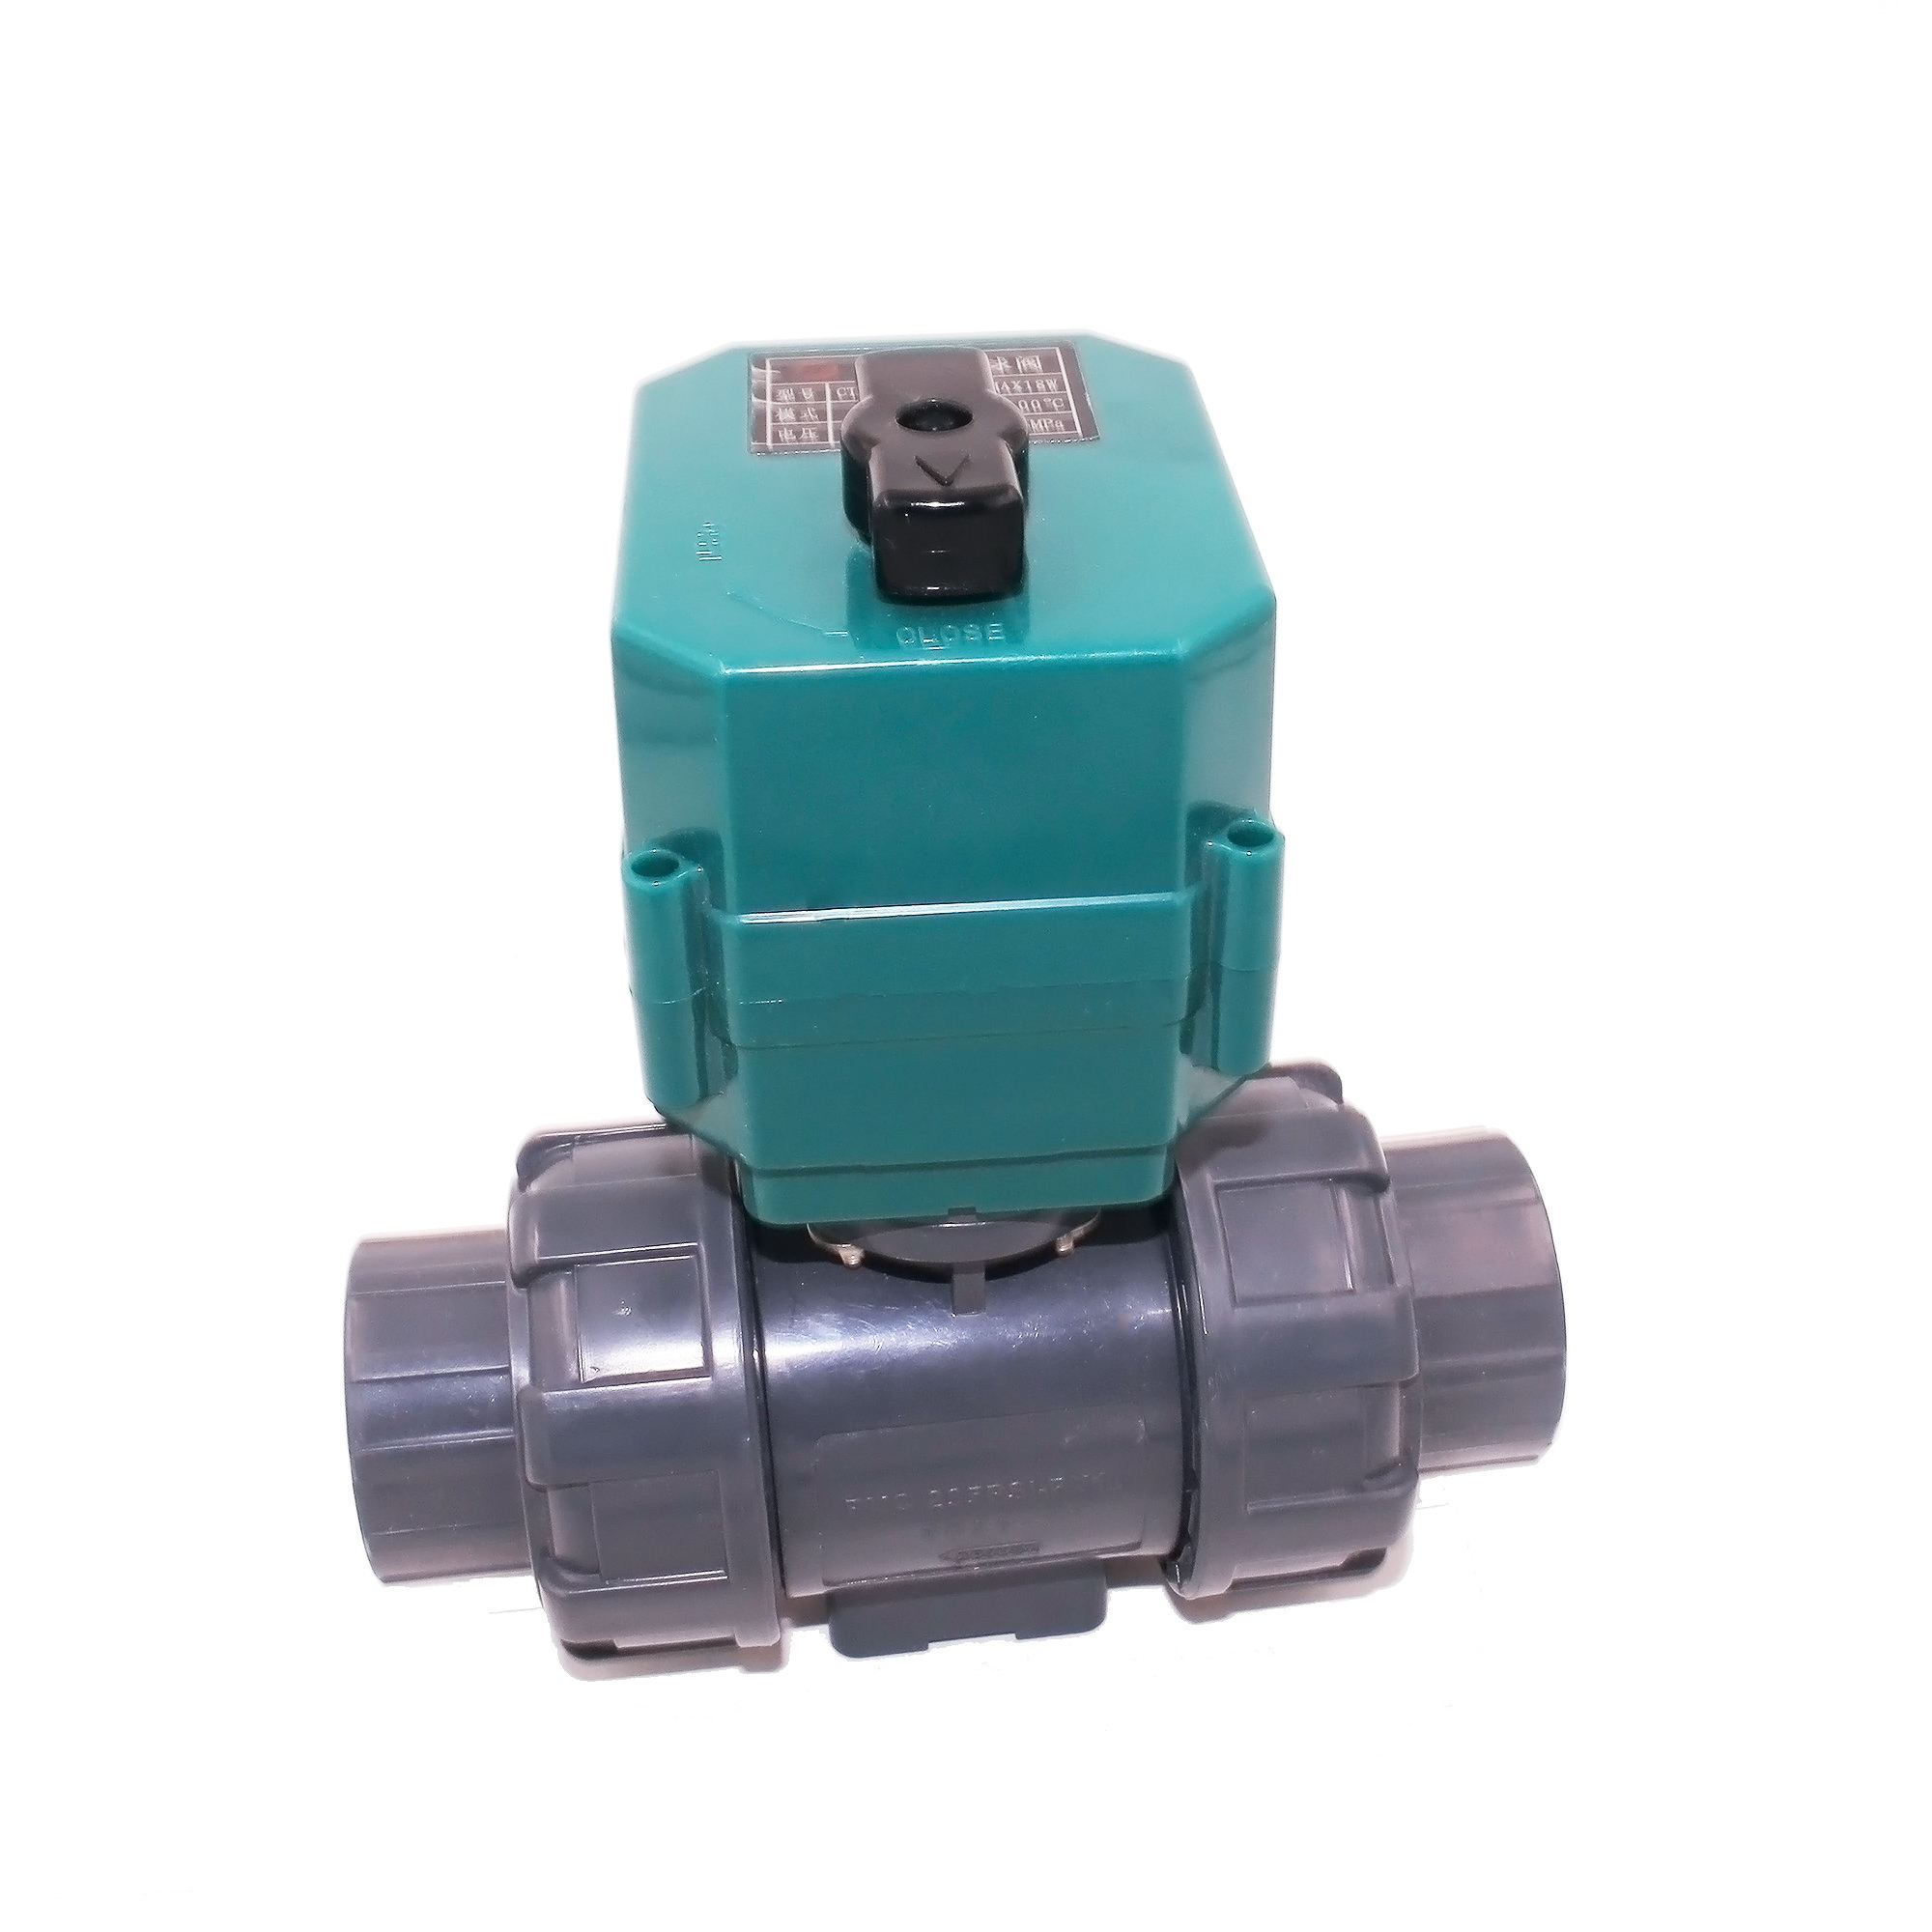 CTF-001 DN50 DN32 DN25 UPVC double union thread DC24V CR04 normally close motorized PVC plastic ball valve